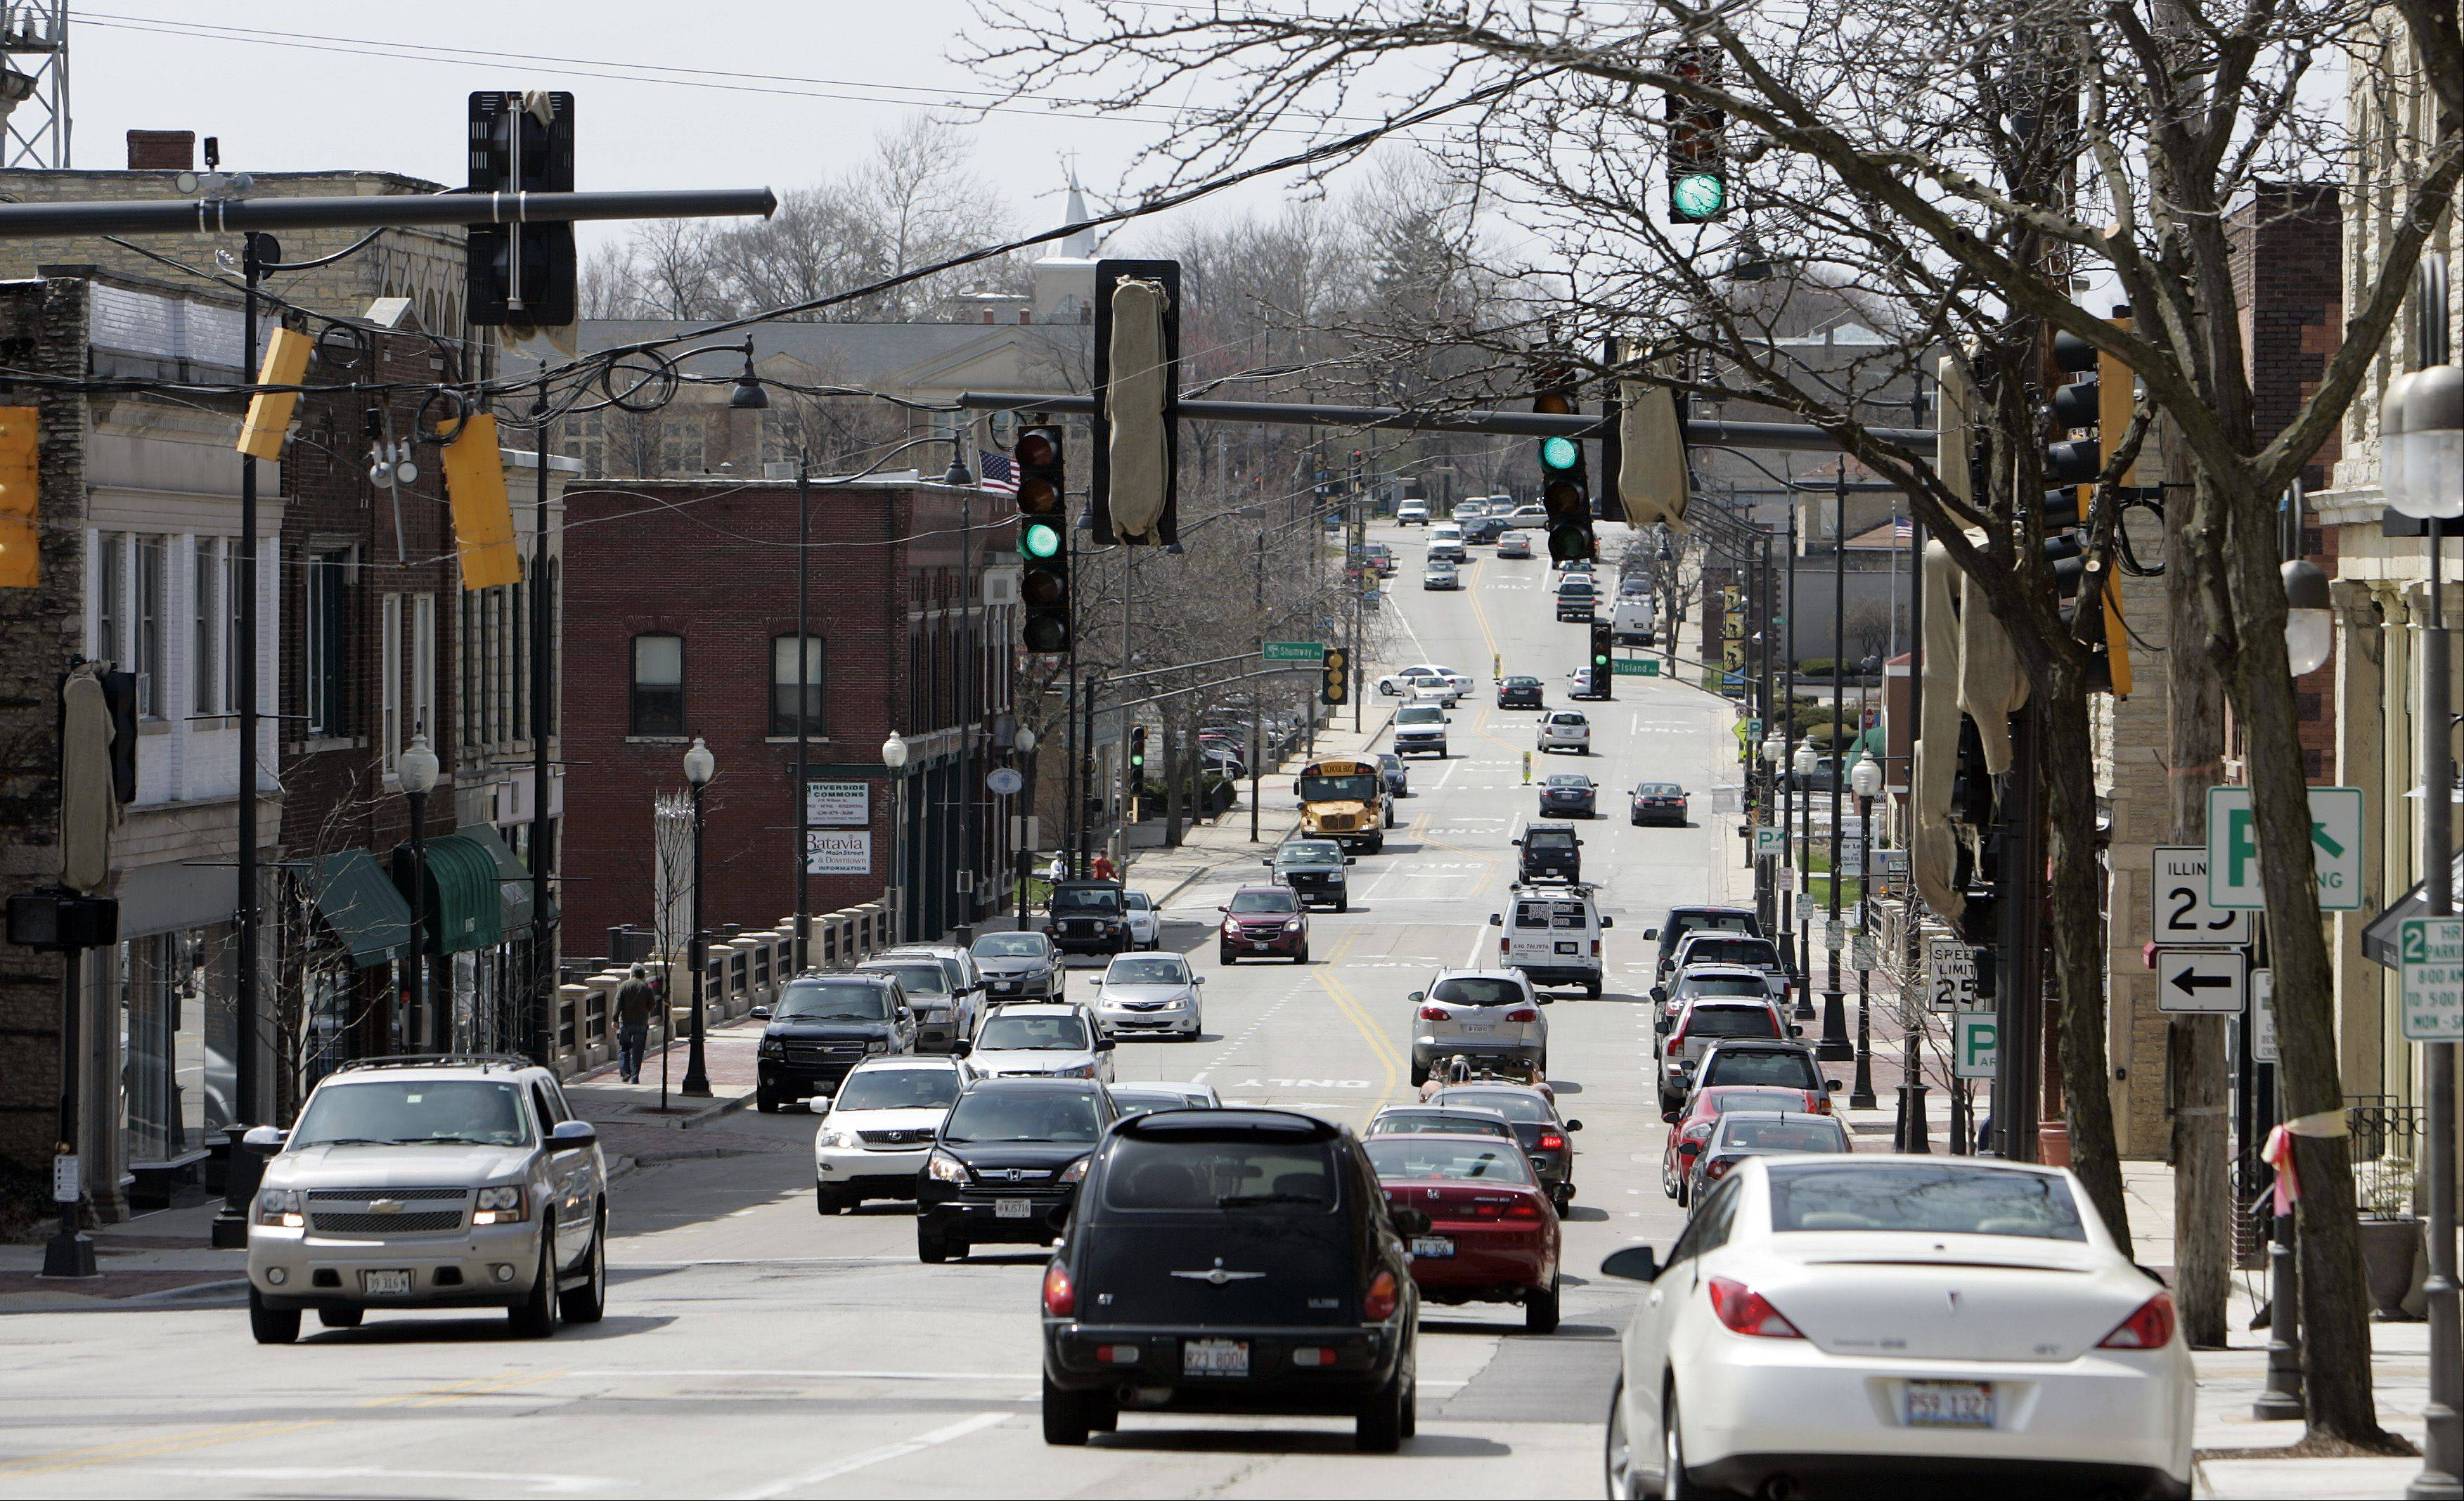 A host of improvements are planned along along Wilson Street in Batavia.